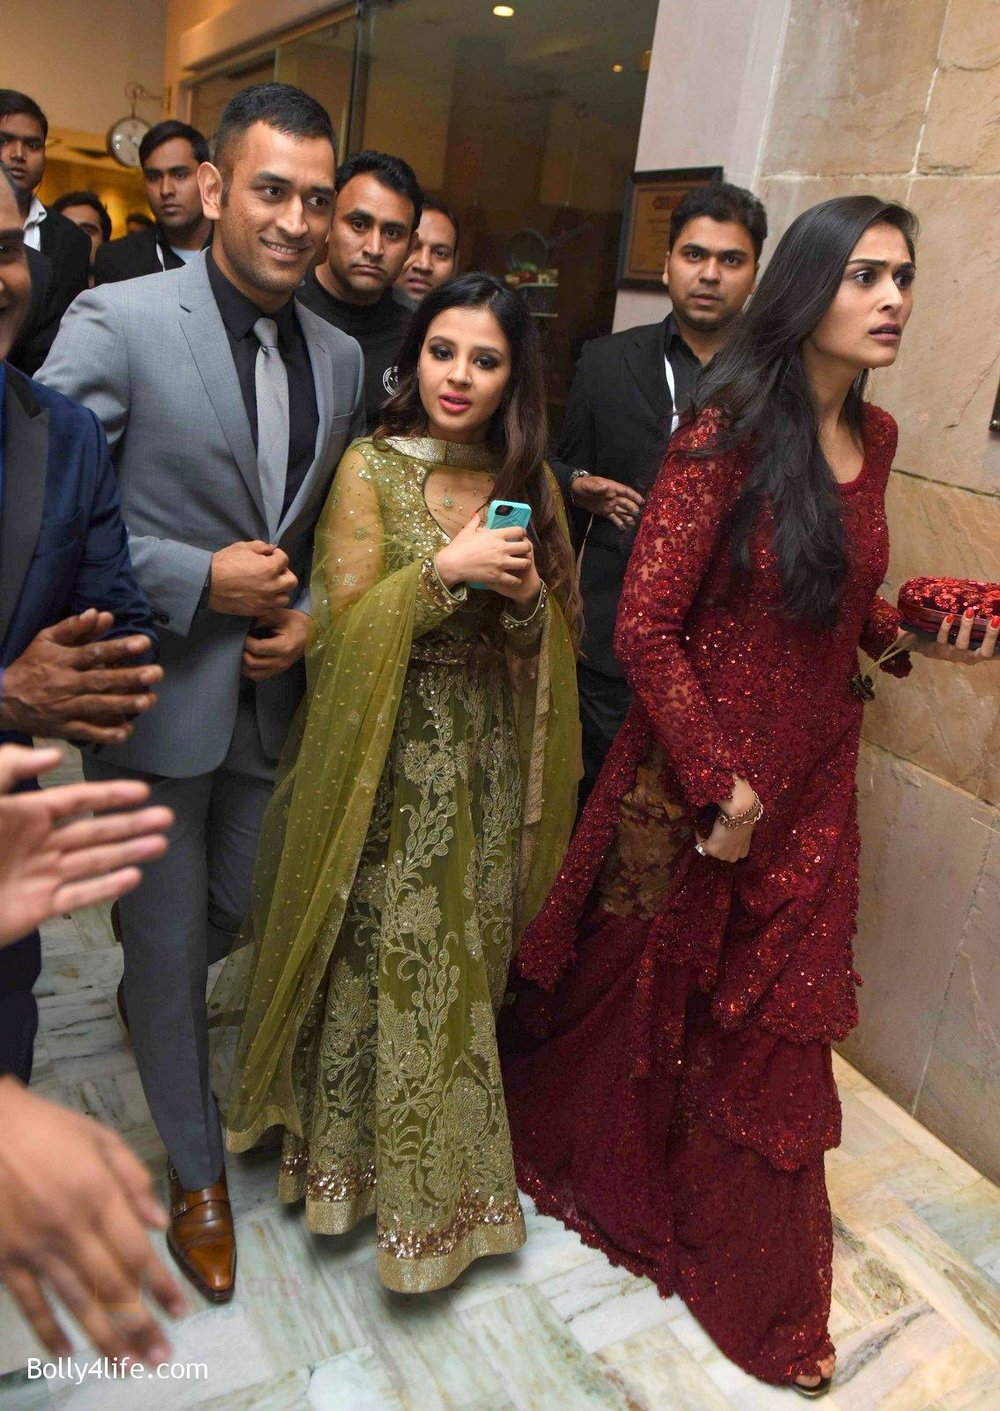 M-S-Dhoni-Shakshi-at-Yuvraj-Singh-and-Hazel-Keech-Wedding-Reception-on-7th-Dec-2016.jpg